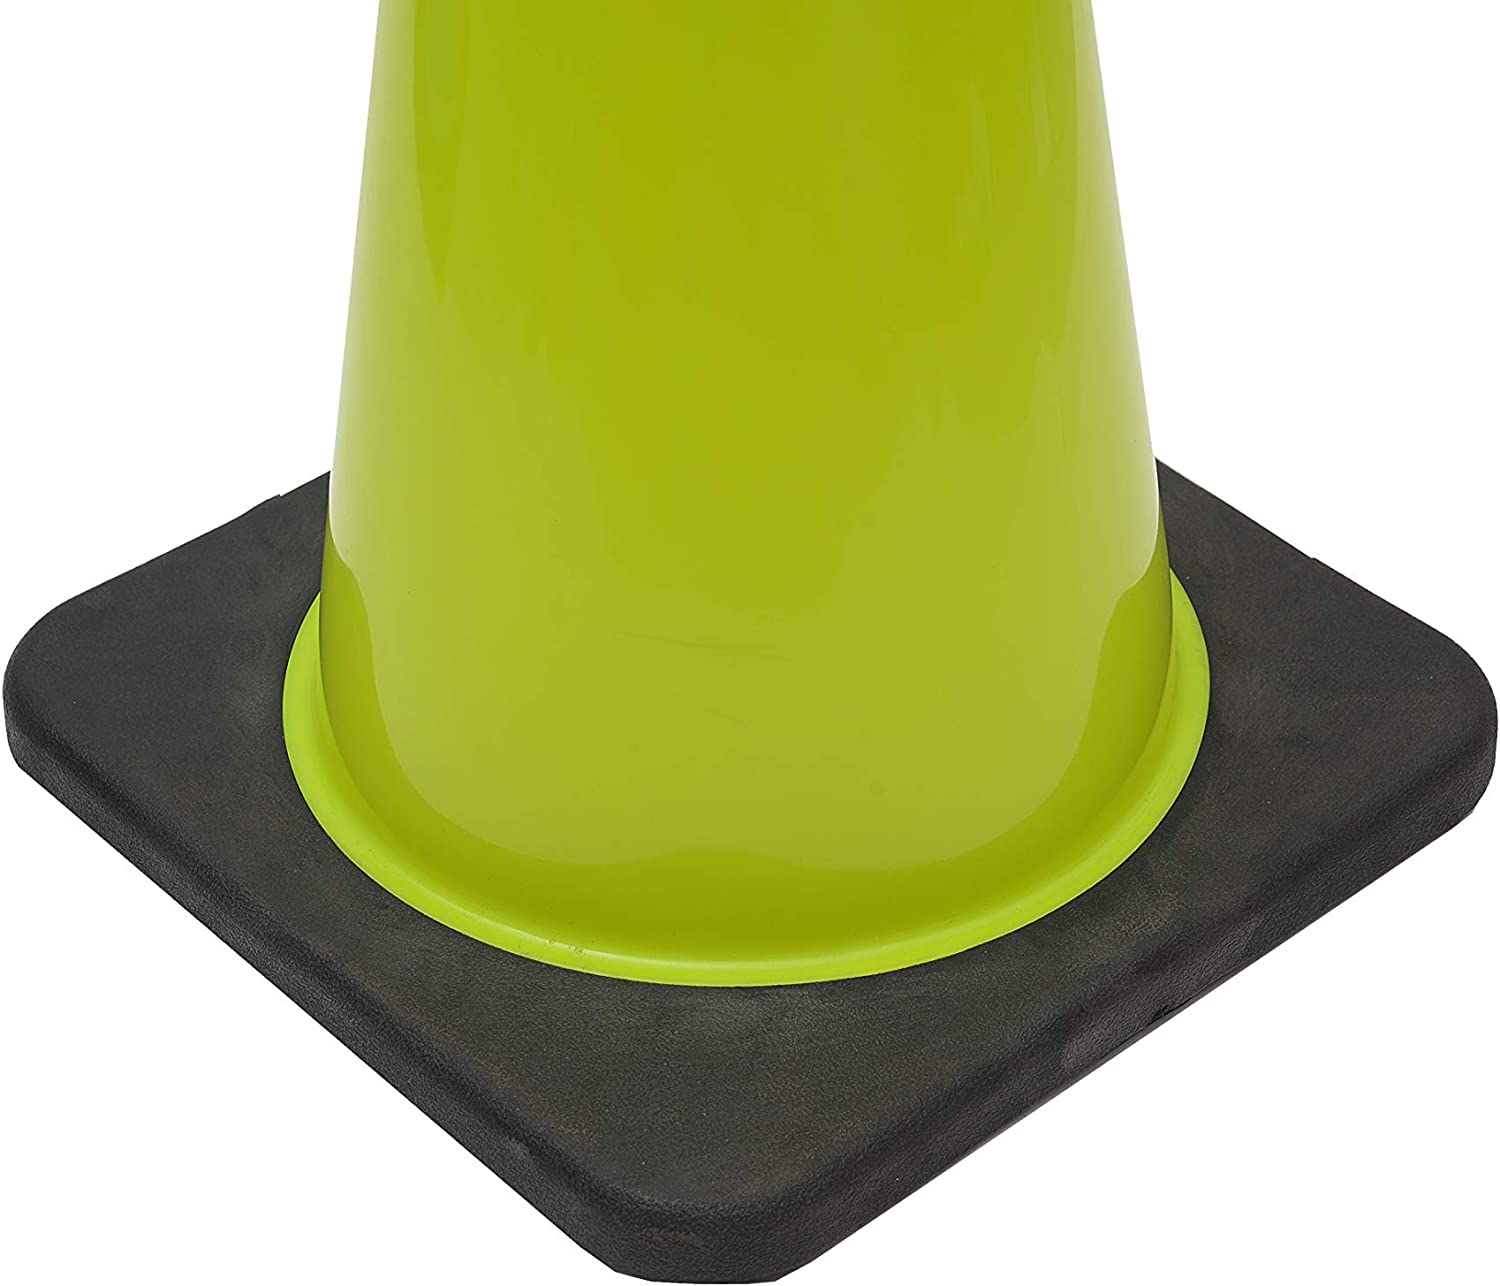 12 Cones, Lime Green CJ Safety 18 Lime Green PVC Traffic Safety Cones